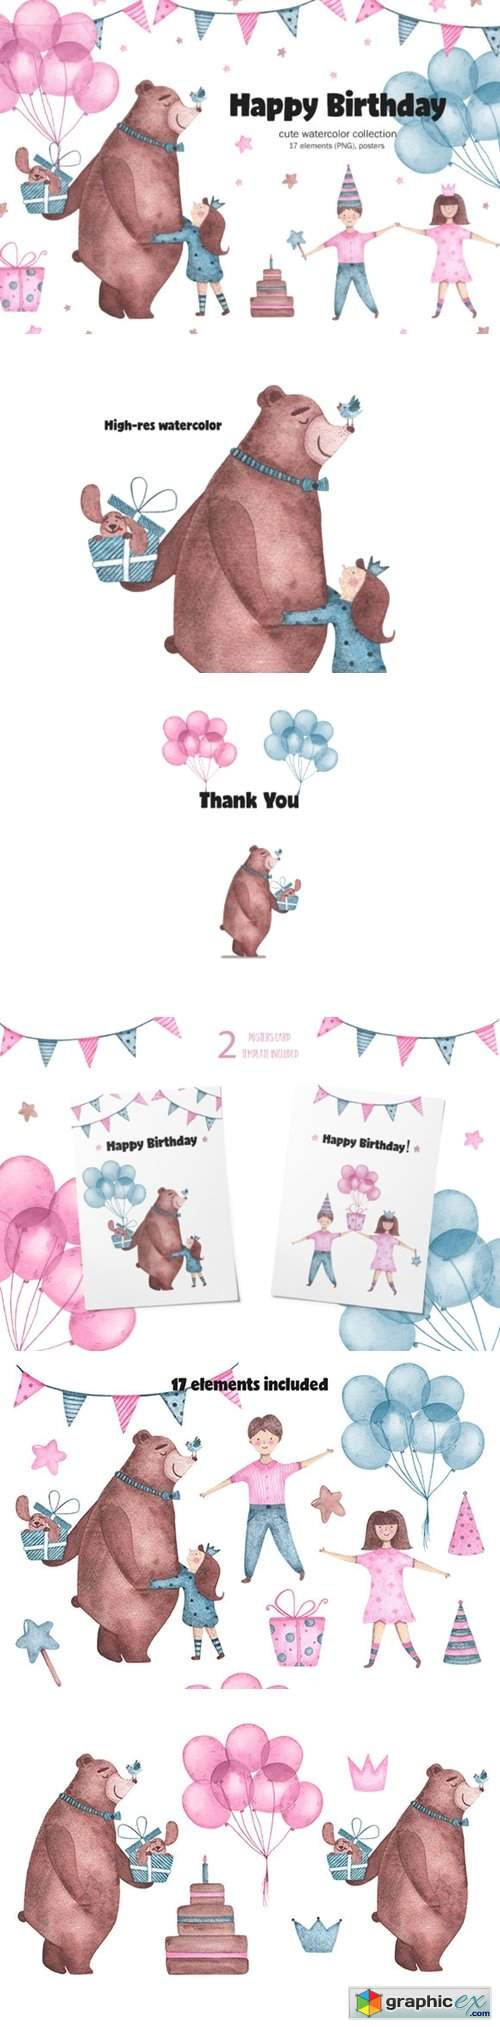 Happy Birthday - Watercolor Clipart